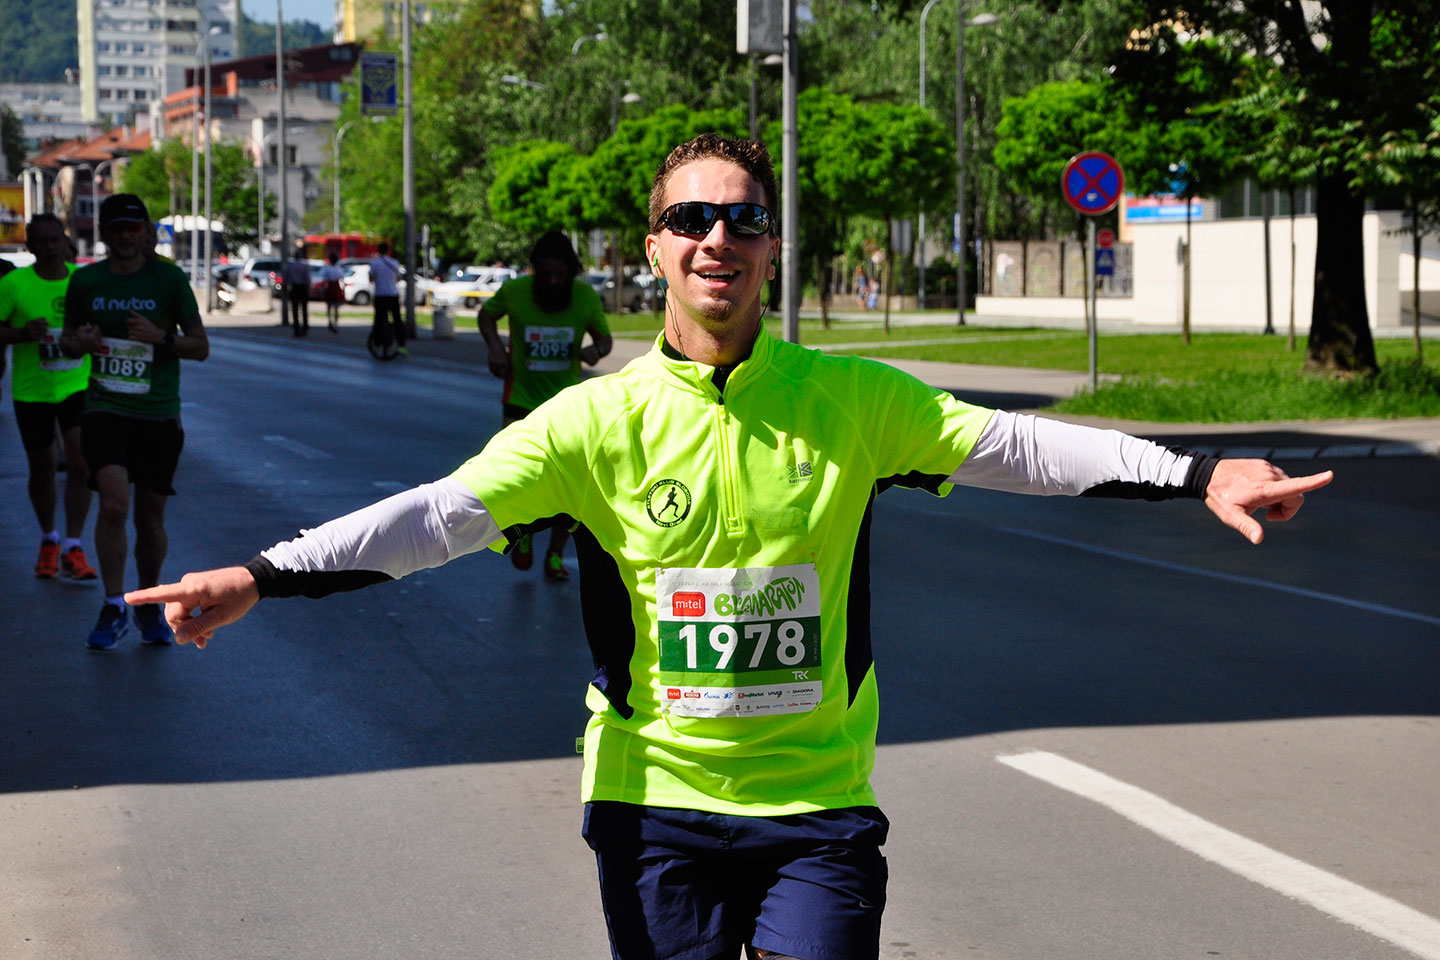 banja luka today - marathon race runner